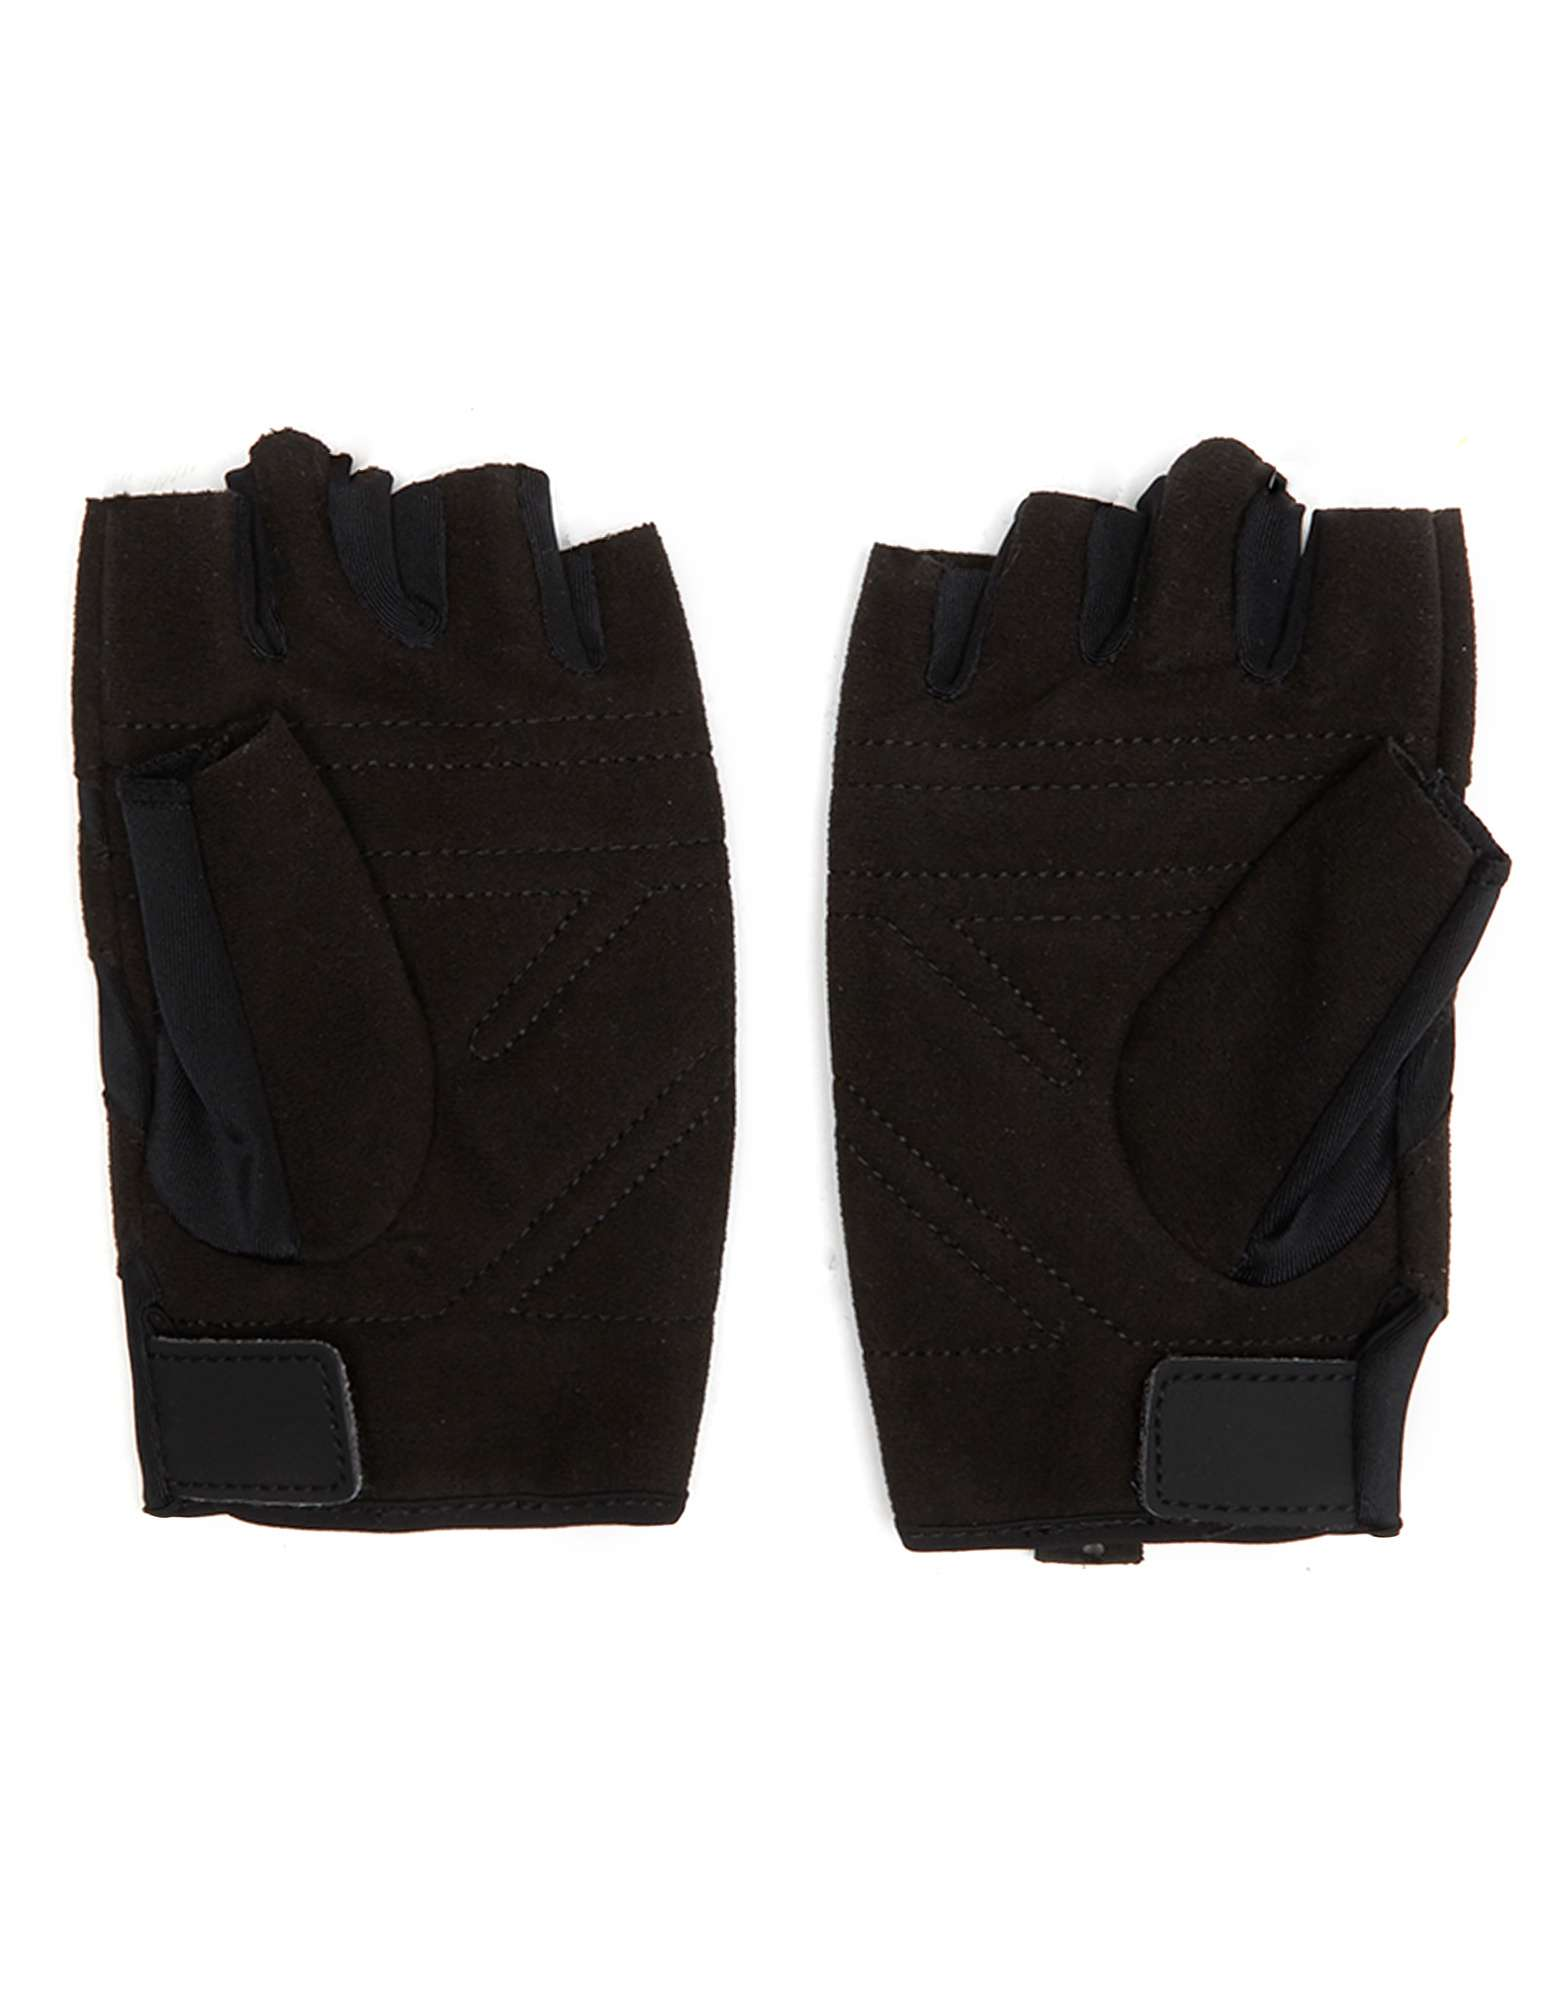 Nike Vent Tech Women's Training Gloves